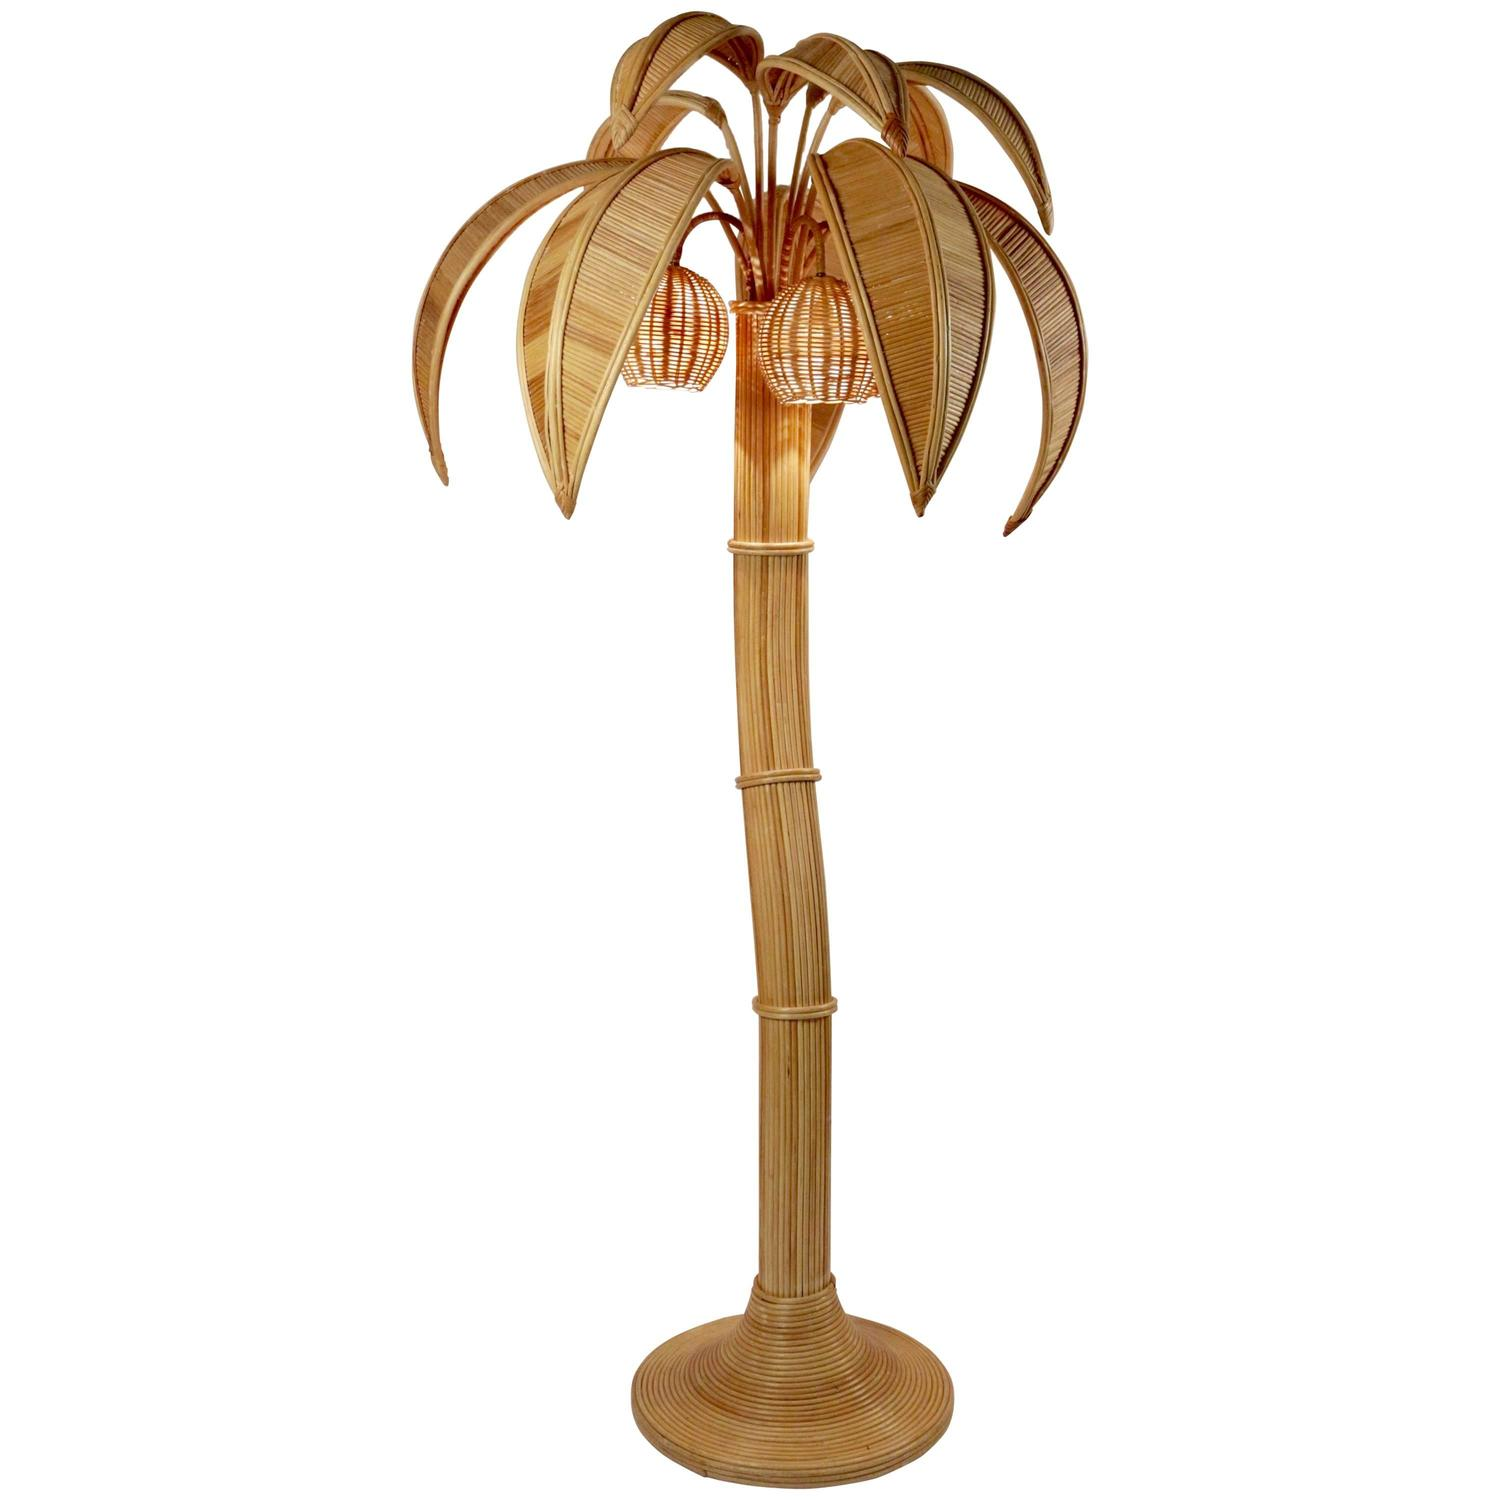 1970s large rattan coconut tree floor lamp at 1stdibs for 1970s floor lamps